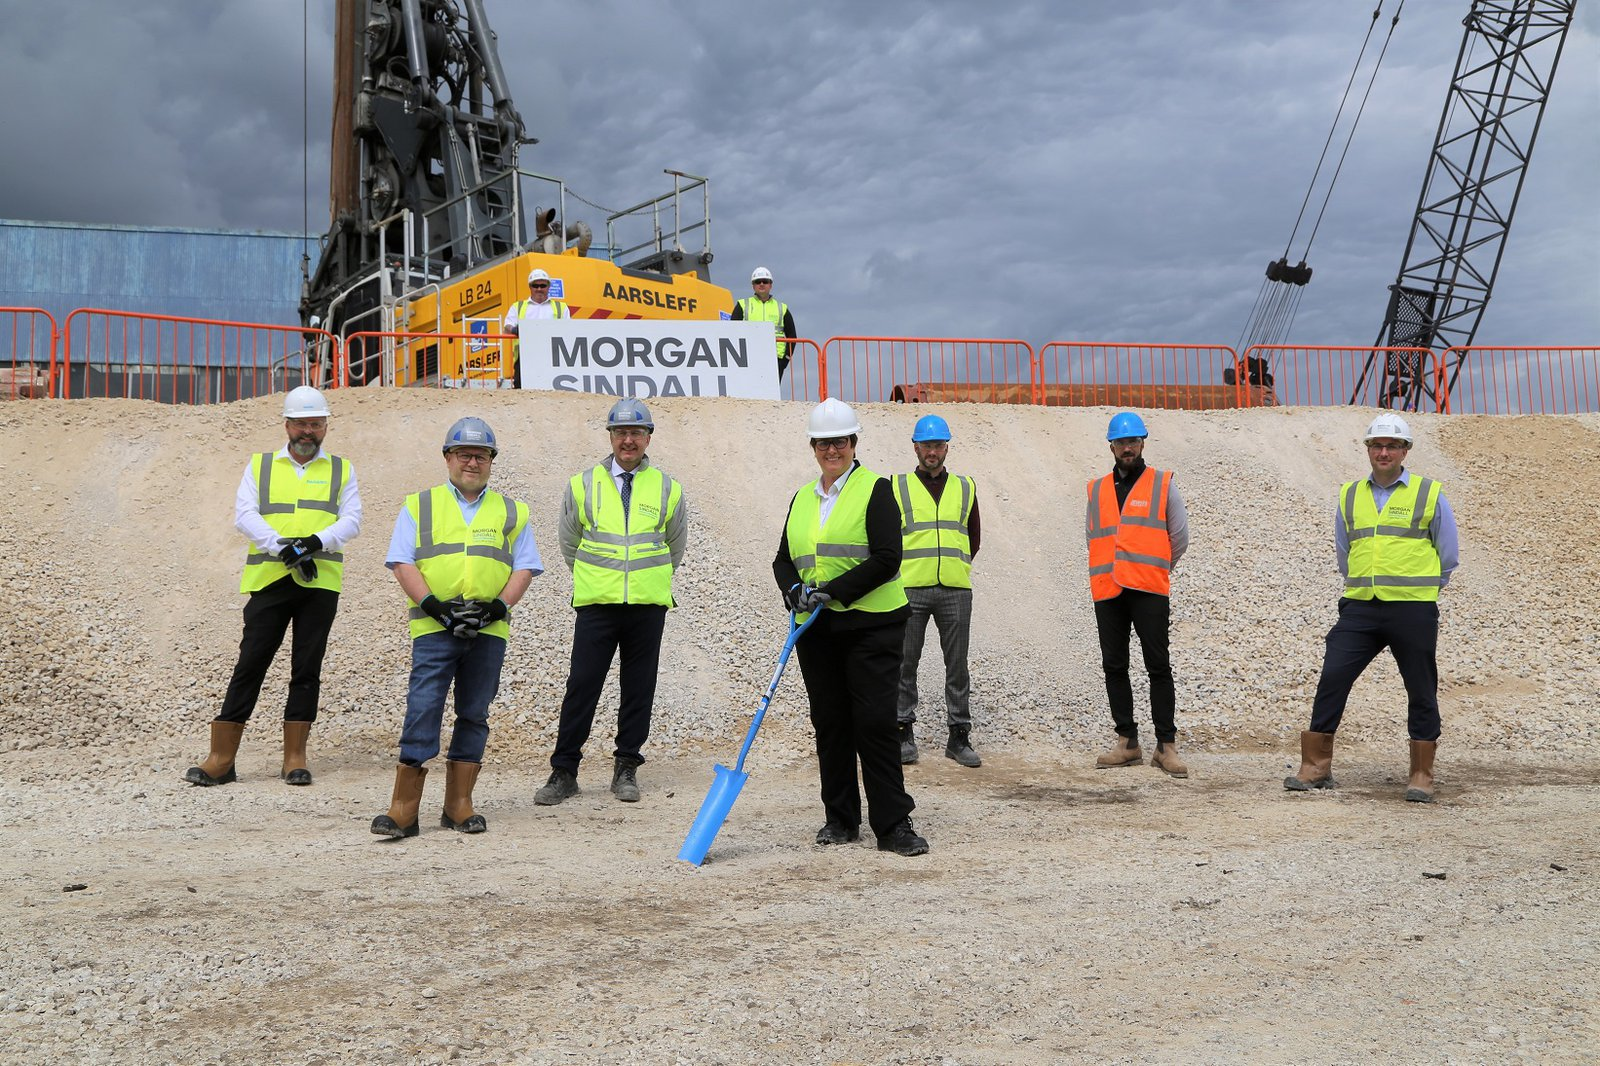 Groundbreaking event at the new Jewson site in Chesterfield